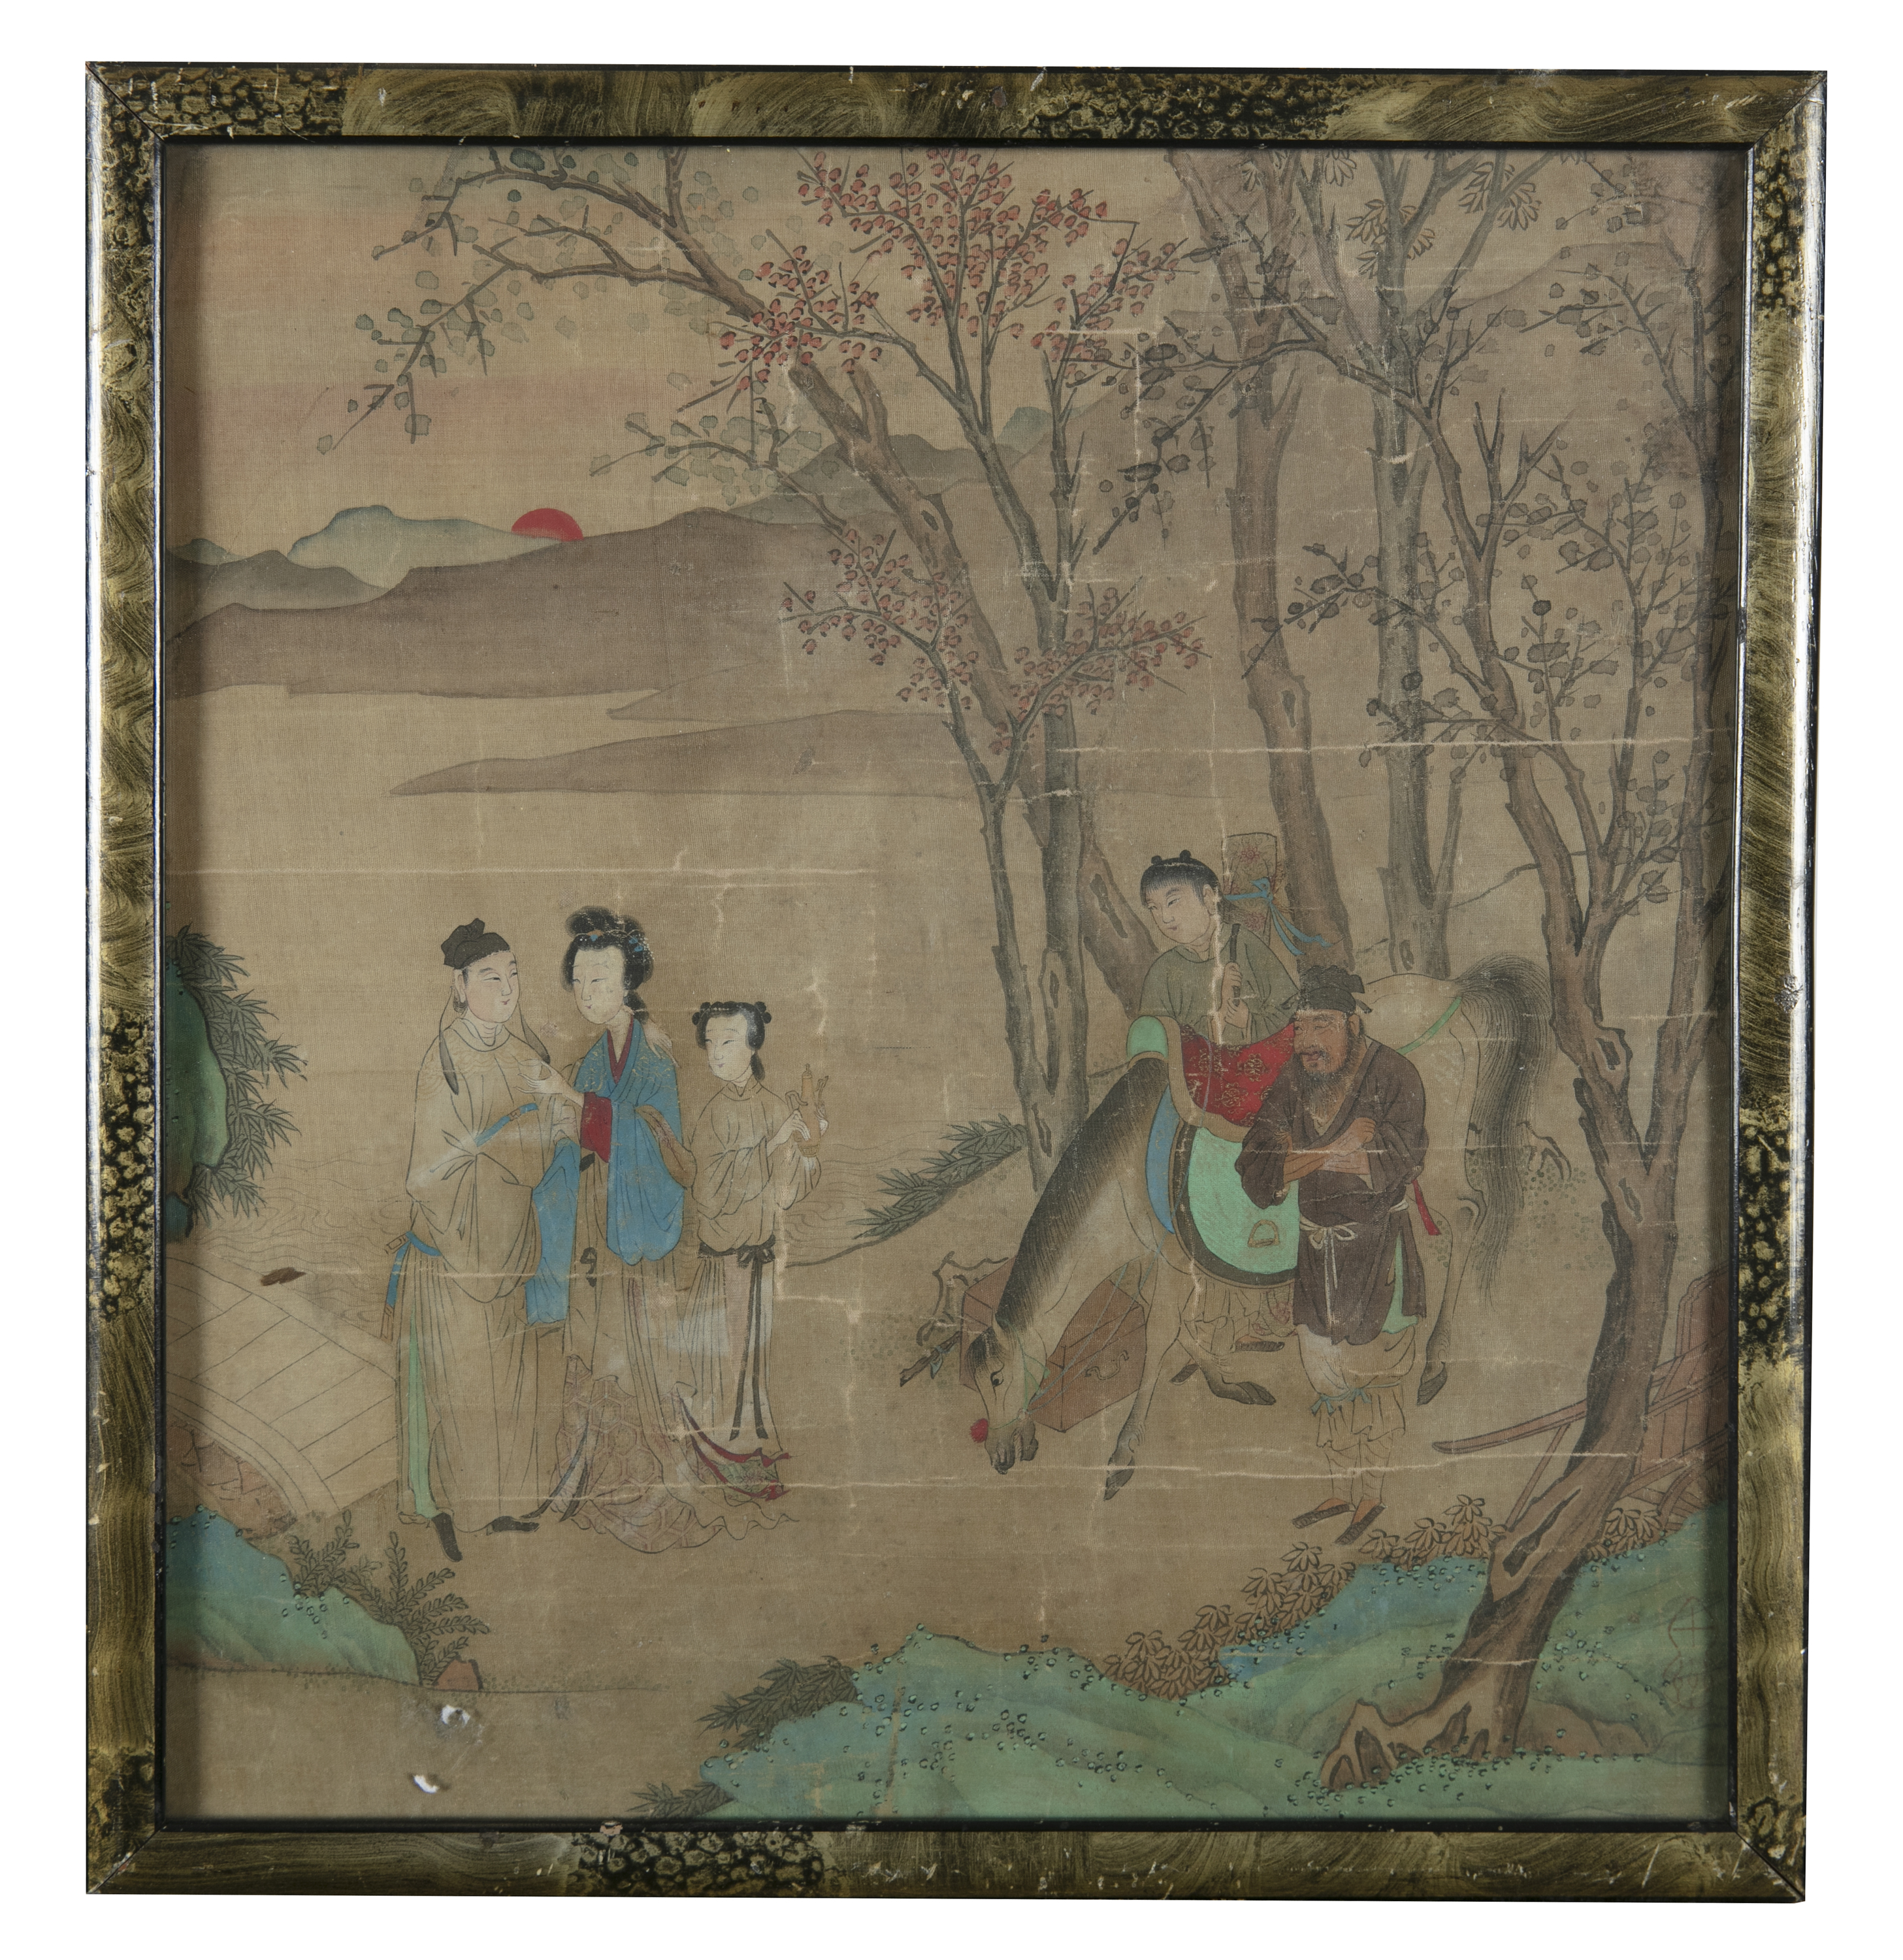 CHINESE SCHOOL, SEAL OF QIU YING 仇英 (1494-1552) Lady and attendants in a landscape at dawn - Image 6 of 10